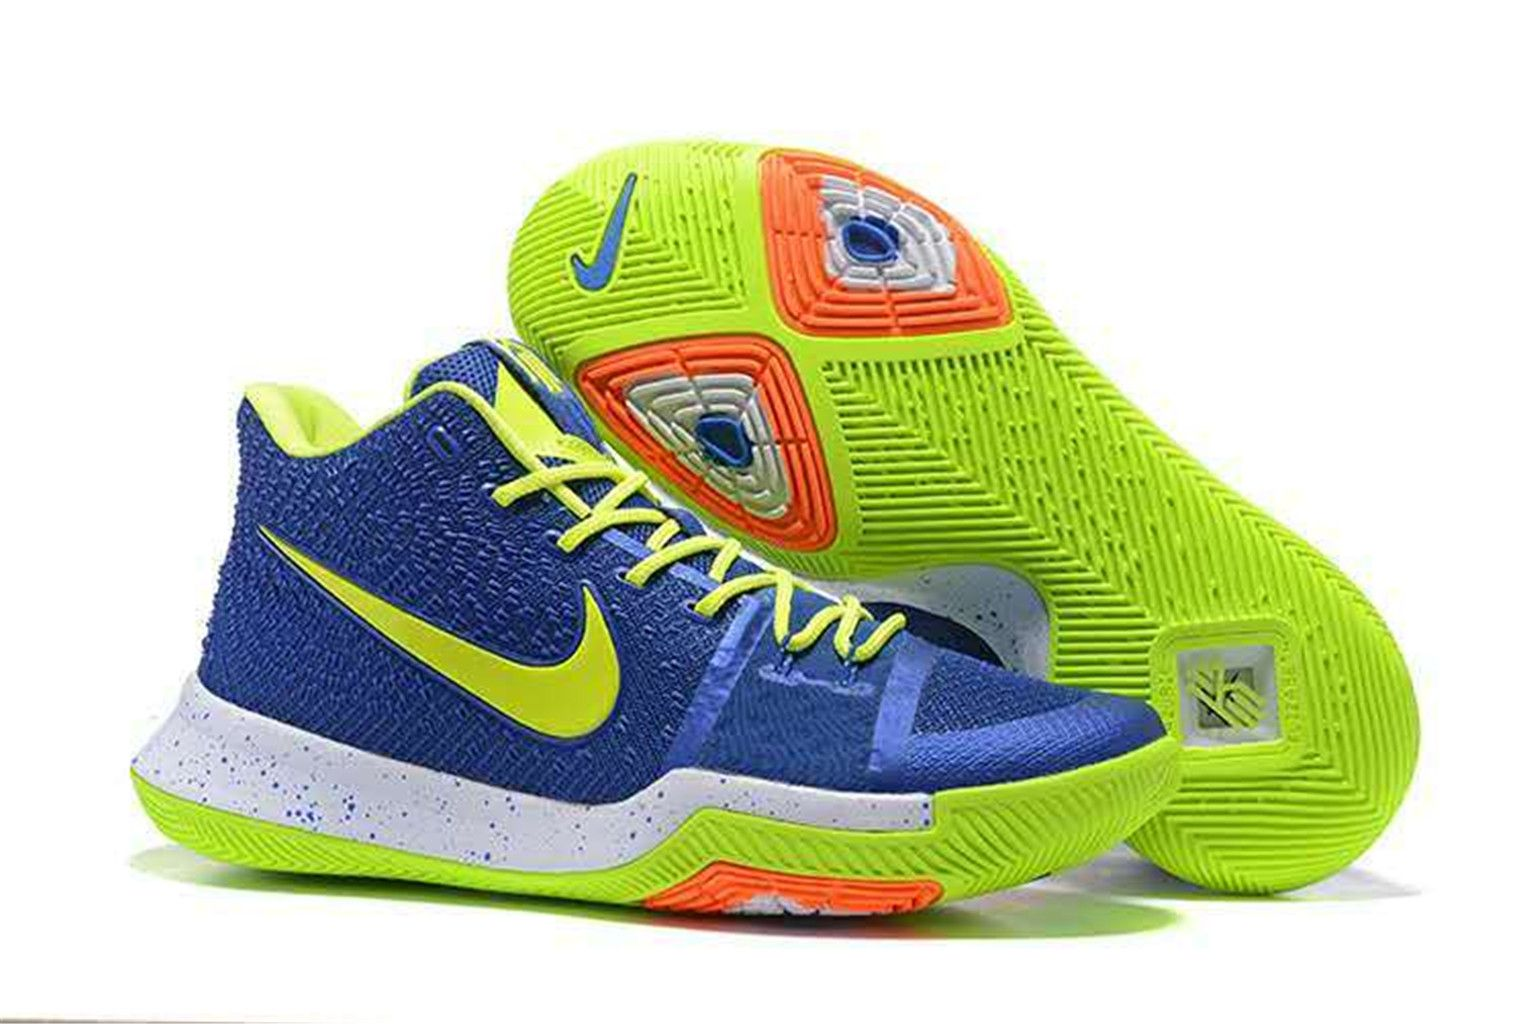 f6b99030e35e Kyrie Irving 3 Basketball Shoes Fluorescent-green Blue on www.kyrie3sale.com